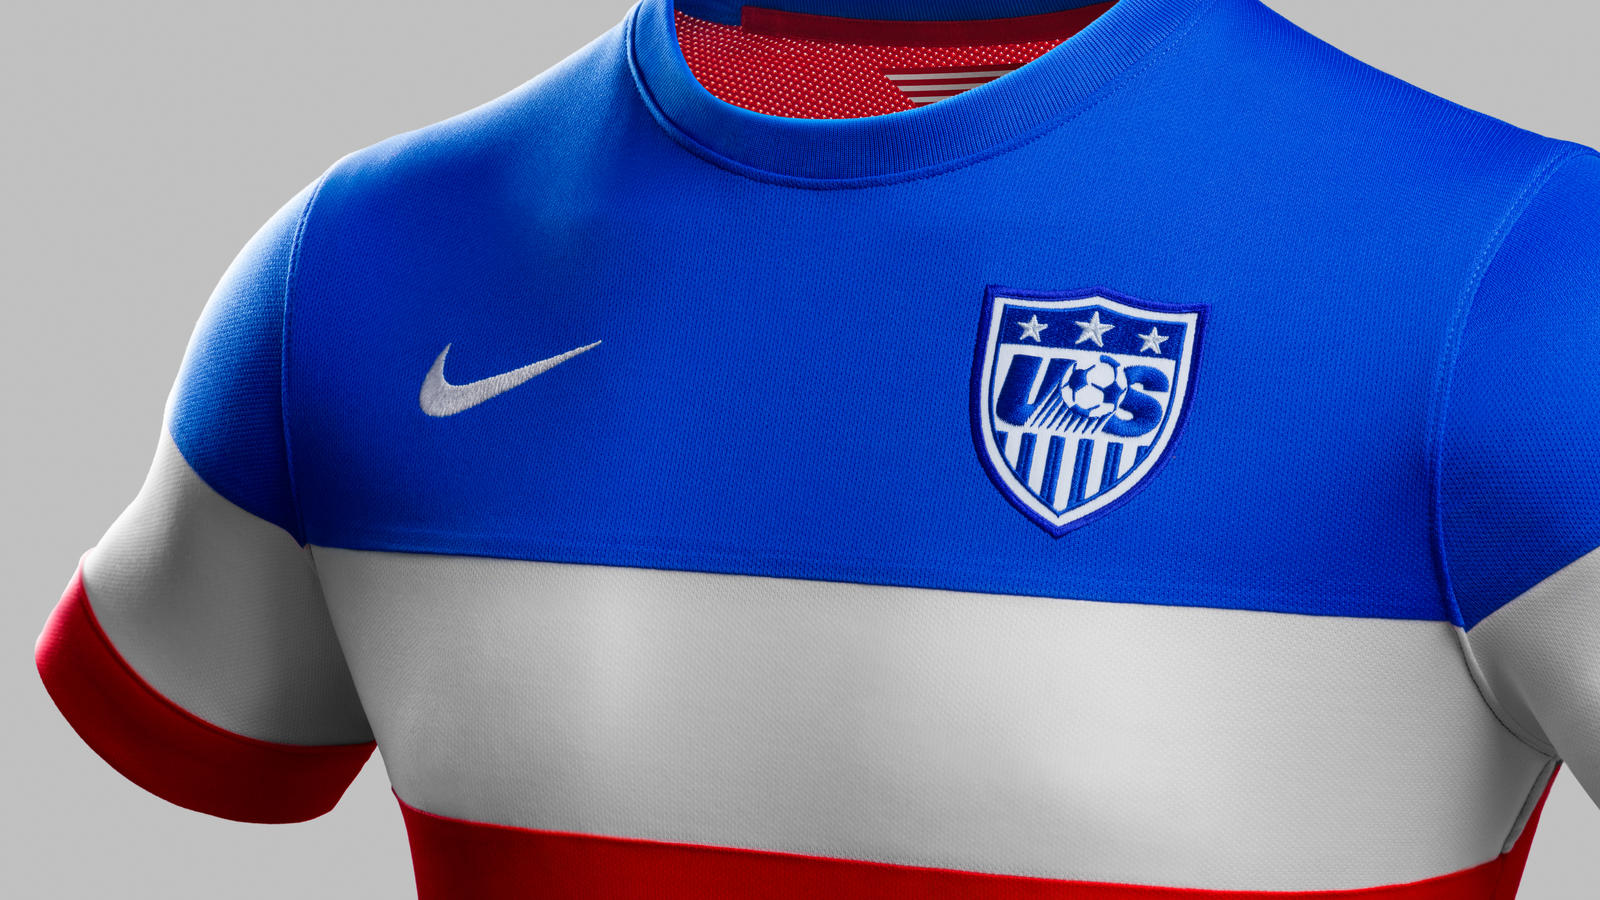 nike usa soccer jersey long sleeve, NIKE AIR MAX 90 blue and